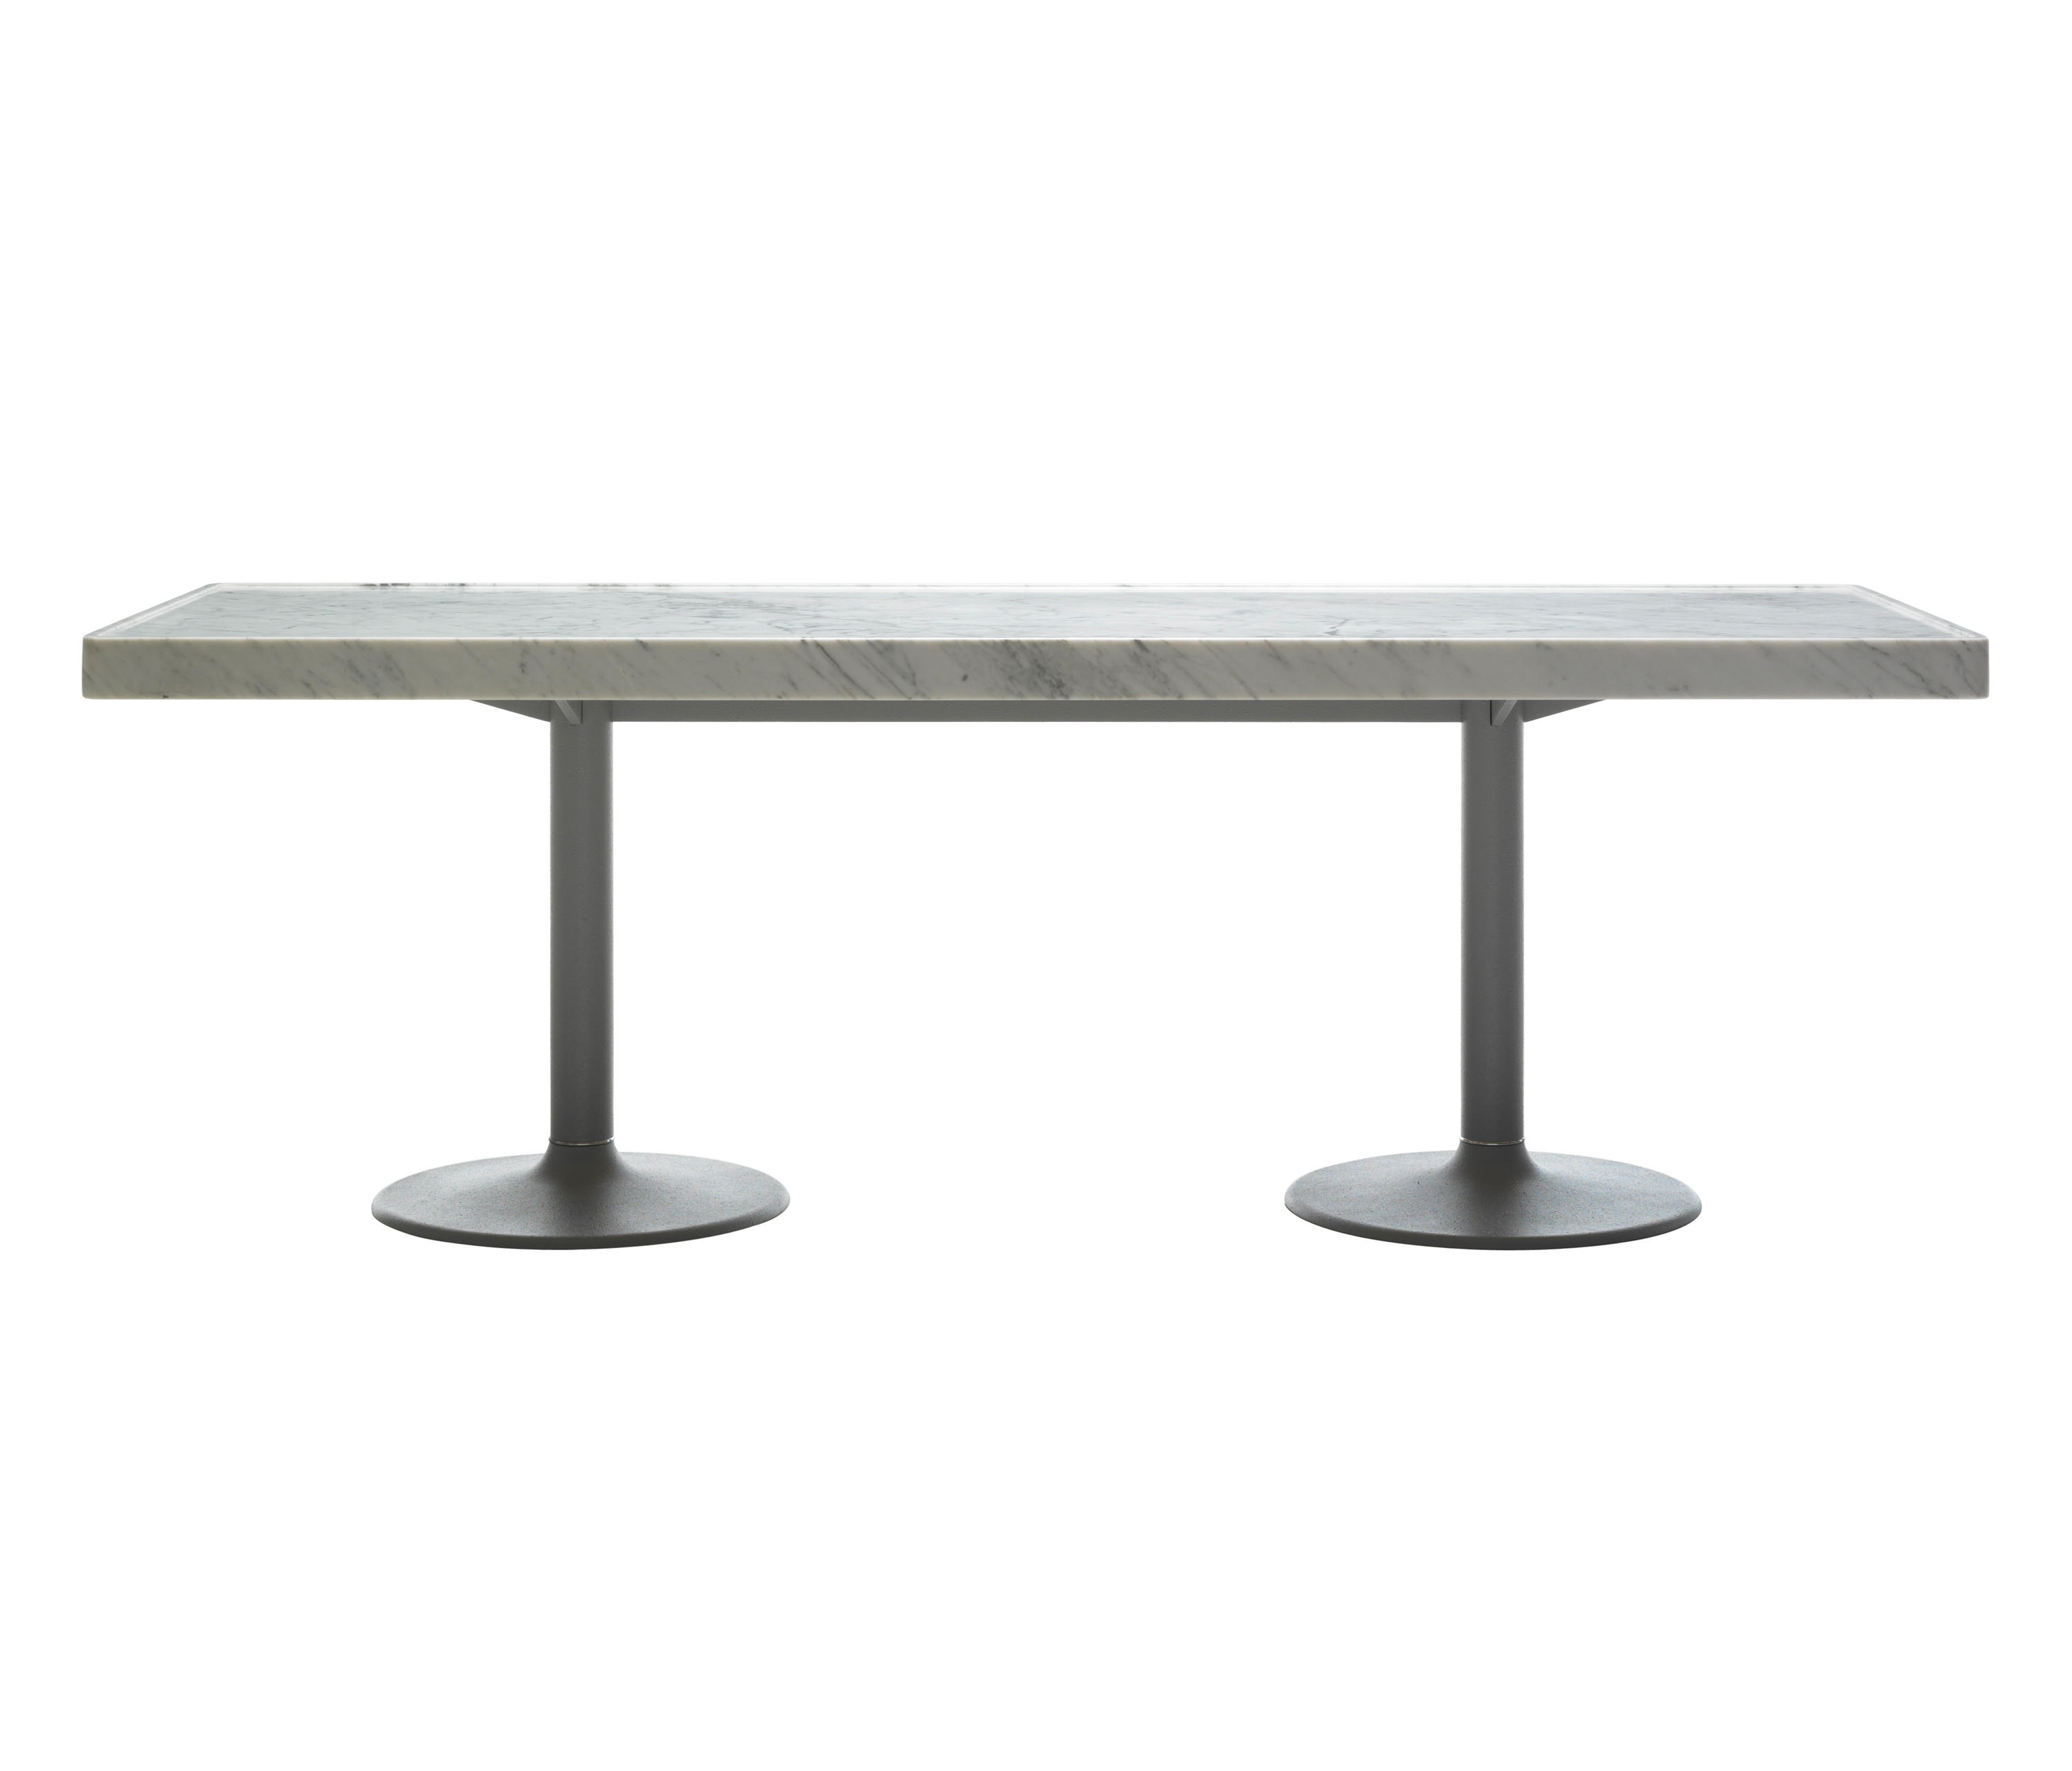 Products by Le Corbusier | Architonic